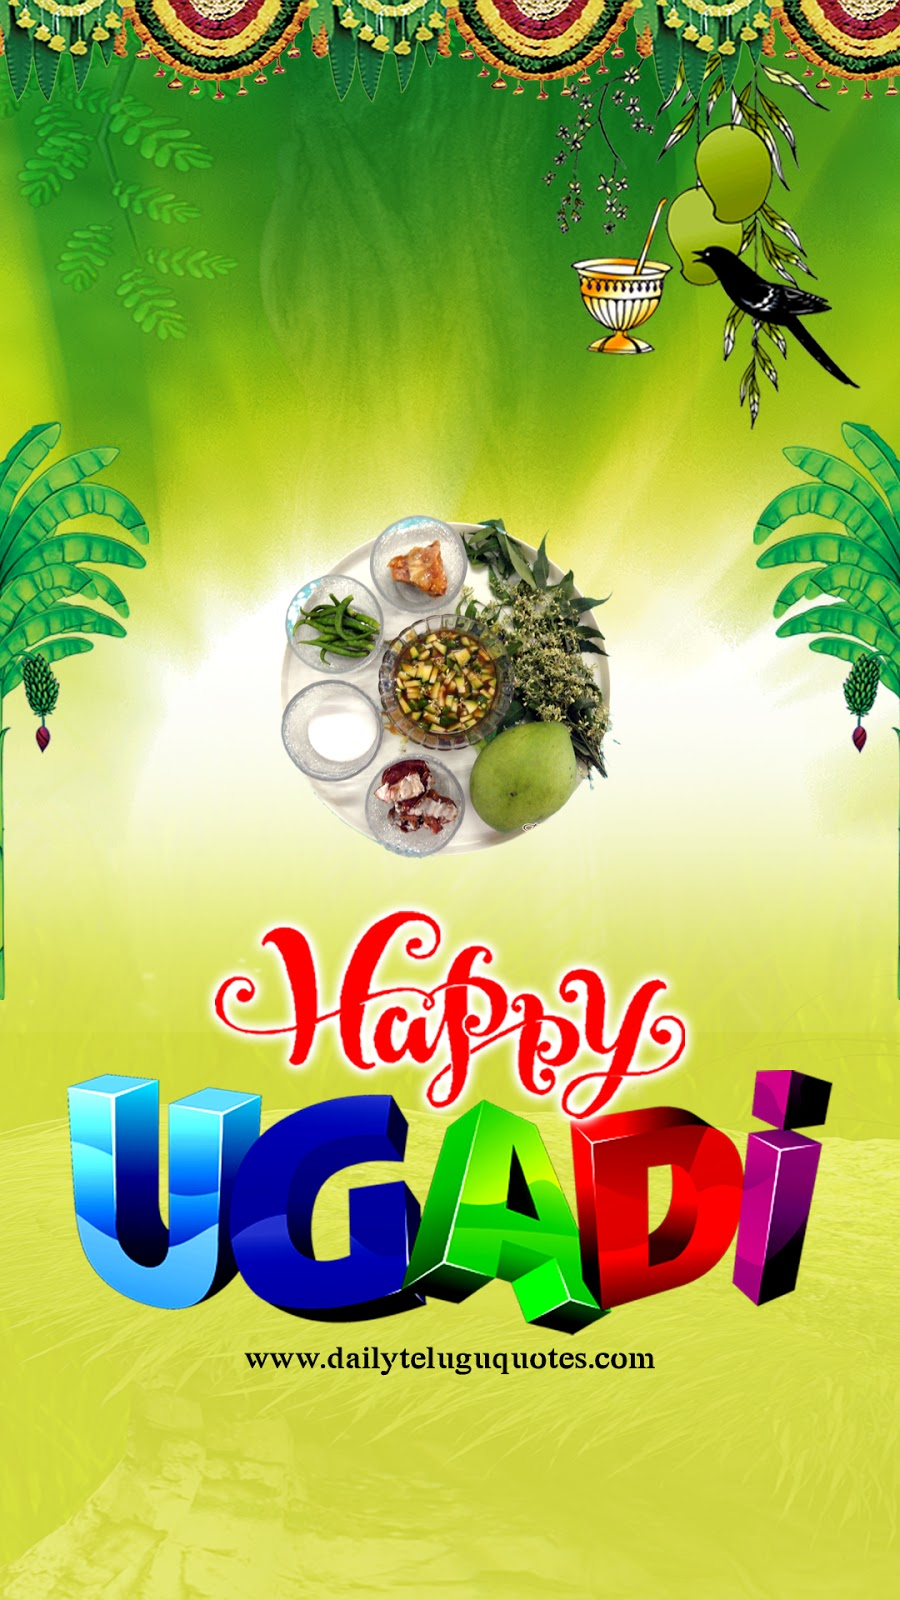 Hapy Ugadi HD Mobile Wallpaper Quotes Wishes Greetings